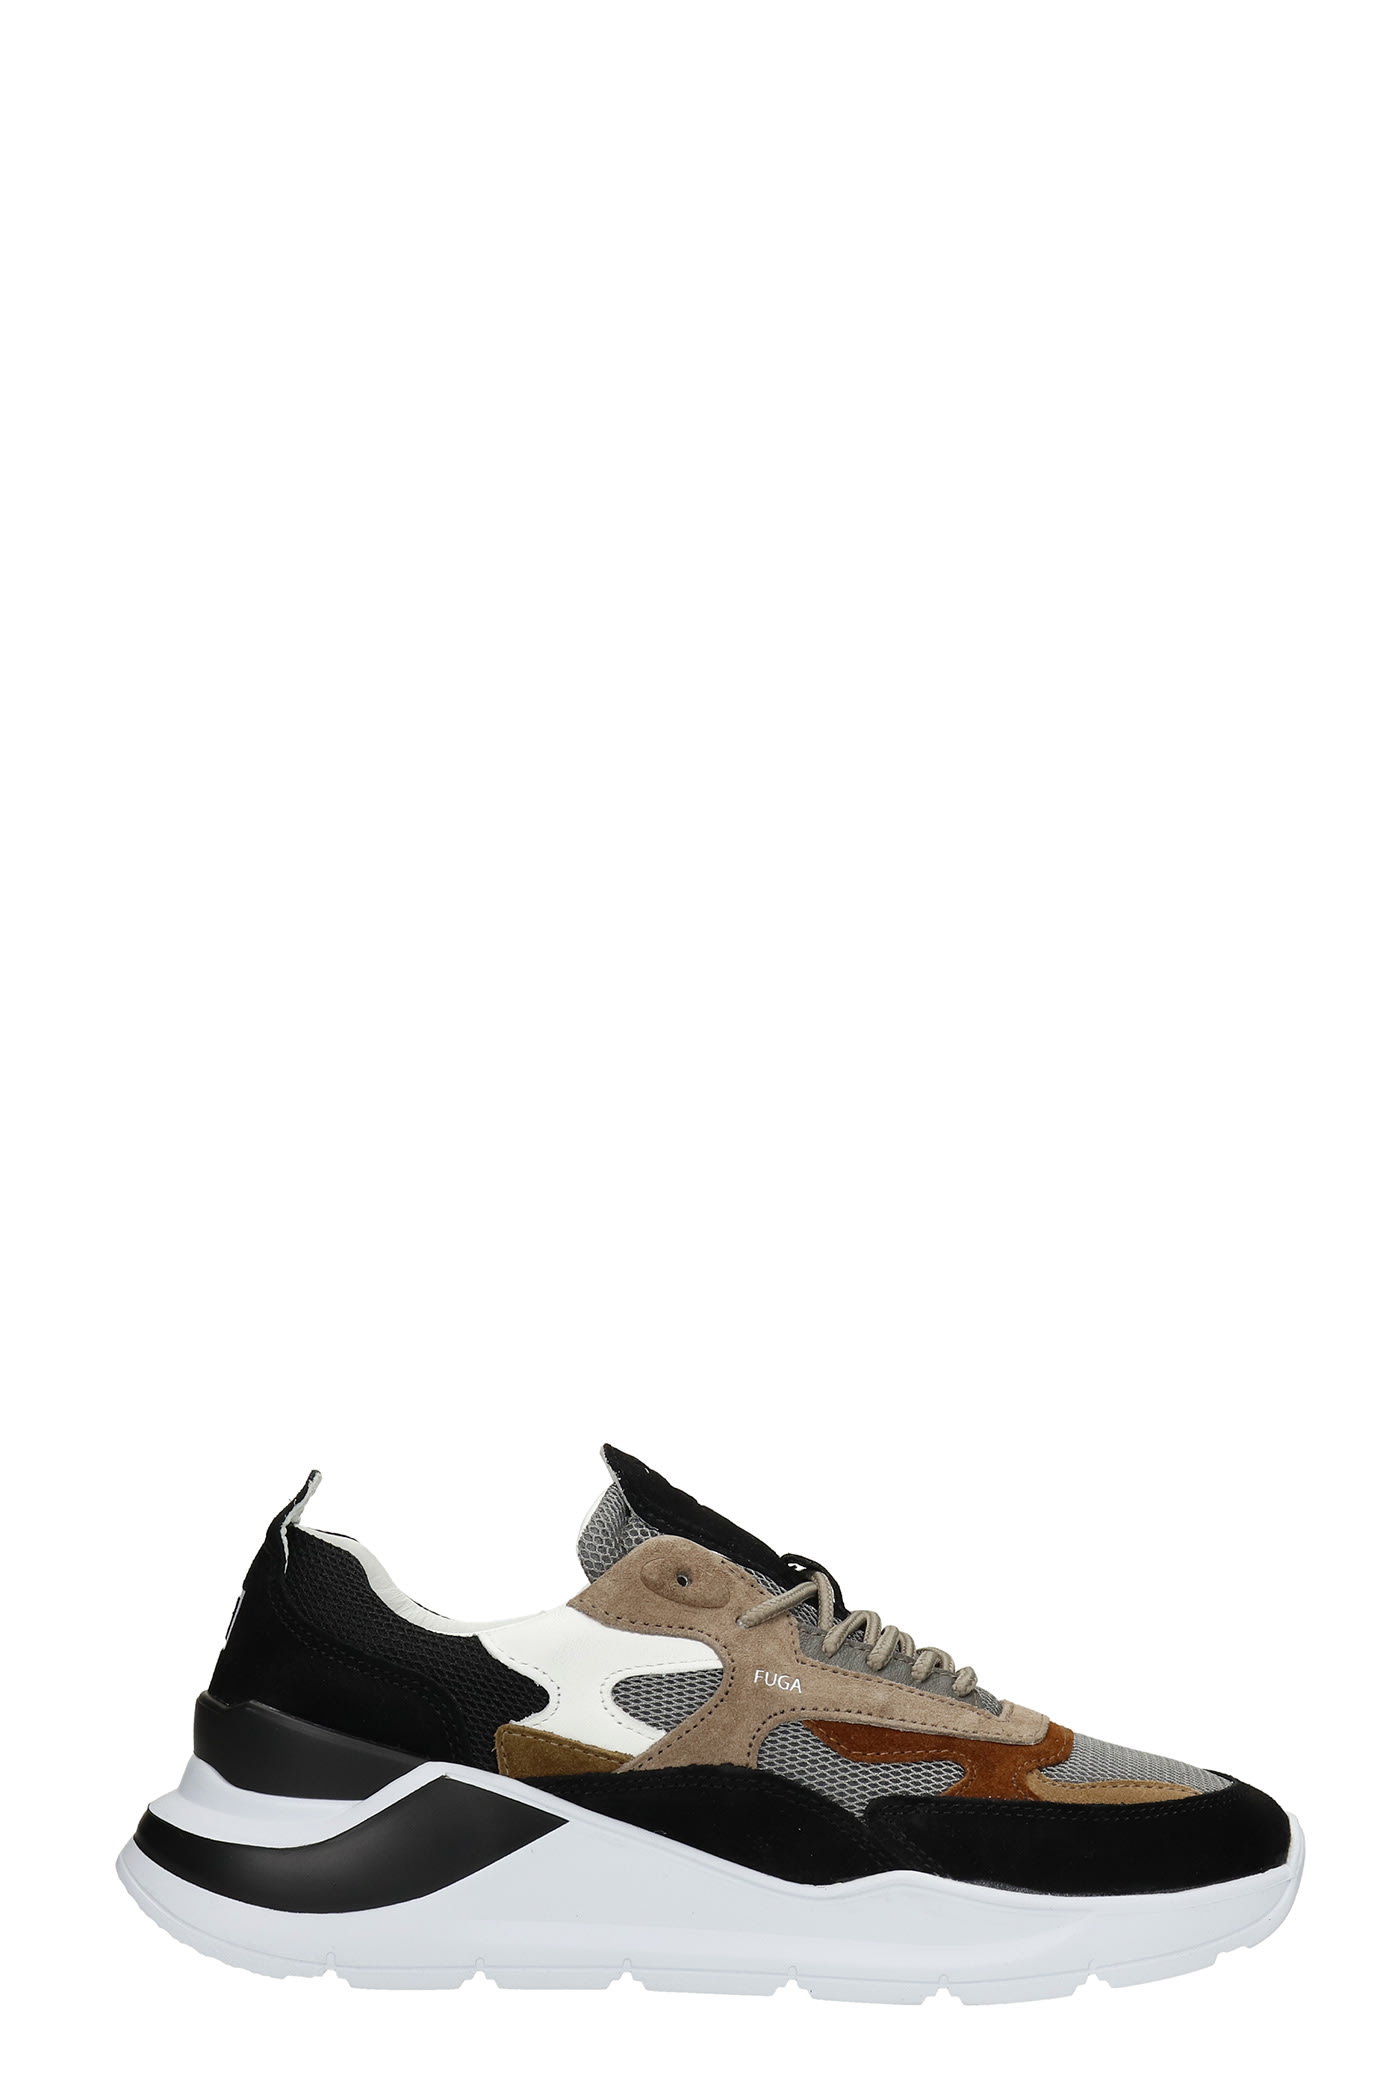 Fuga Sneakers In Black Suede And Fabric